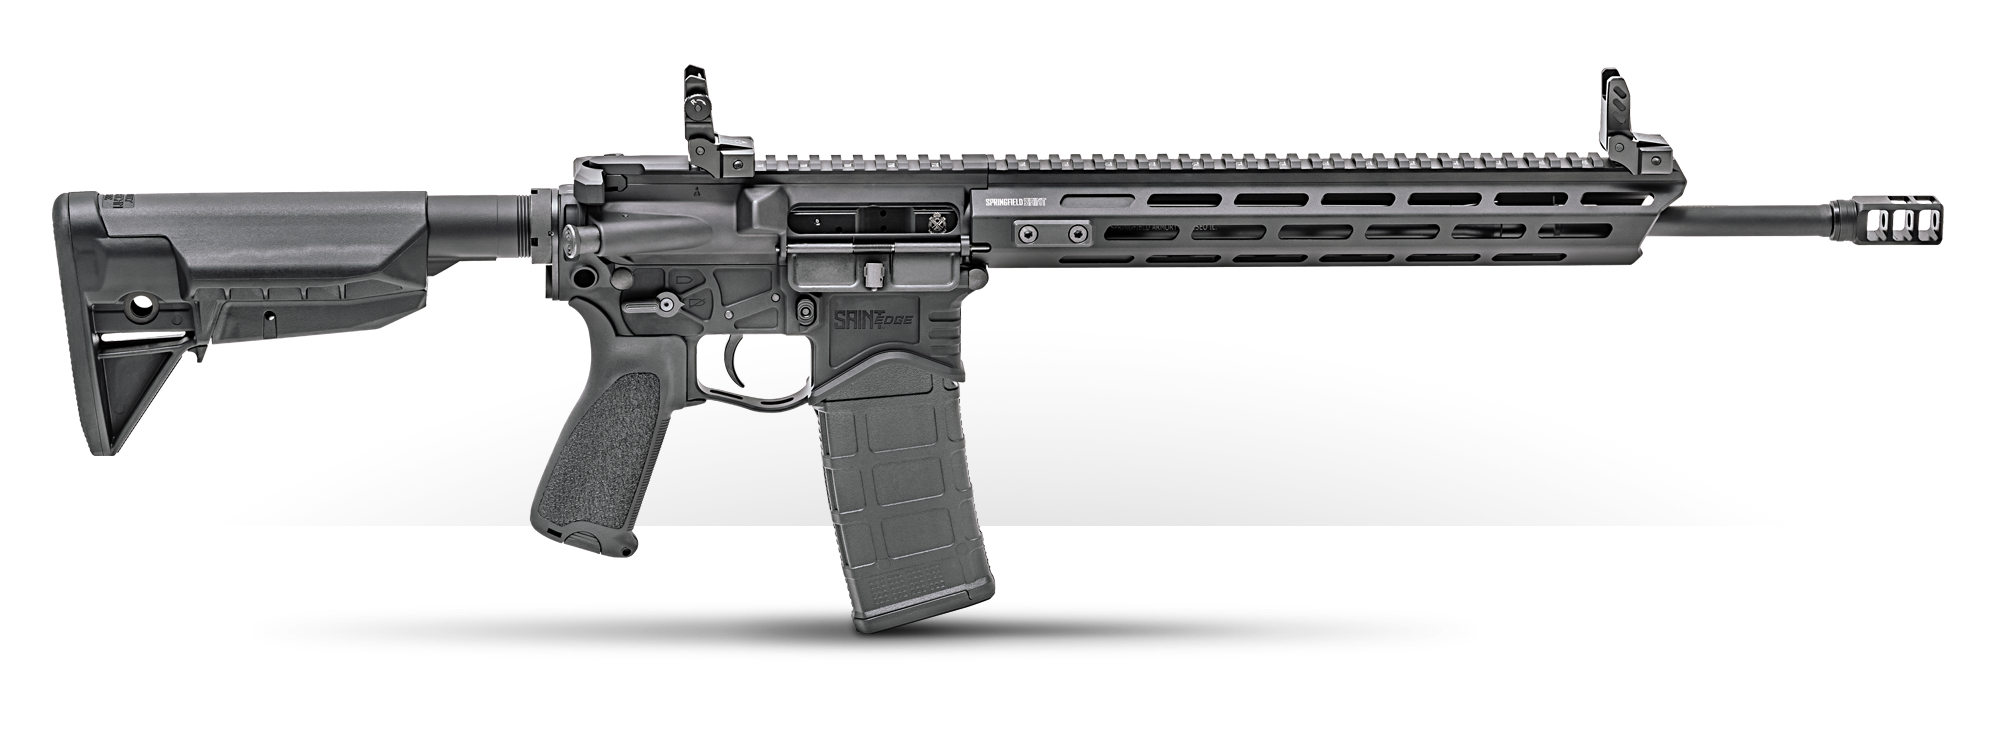 SAINT™ Edge AR.